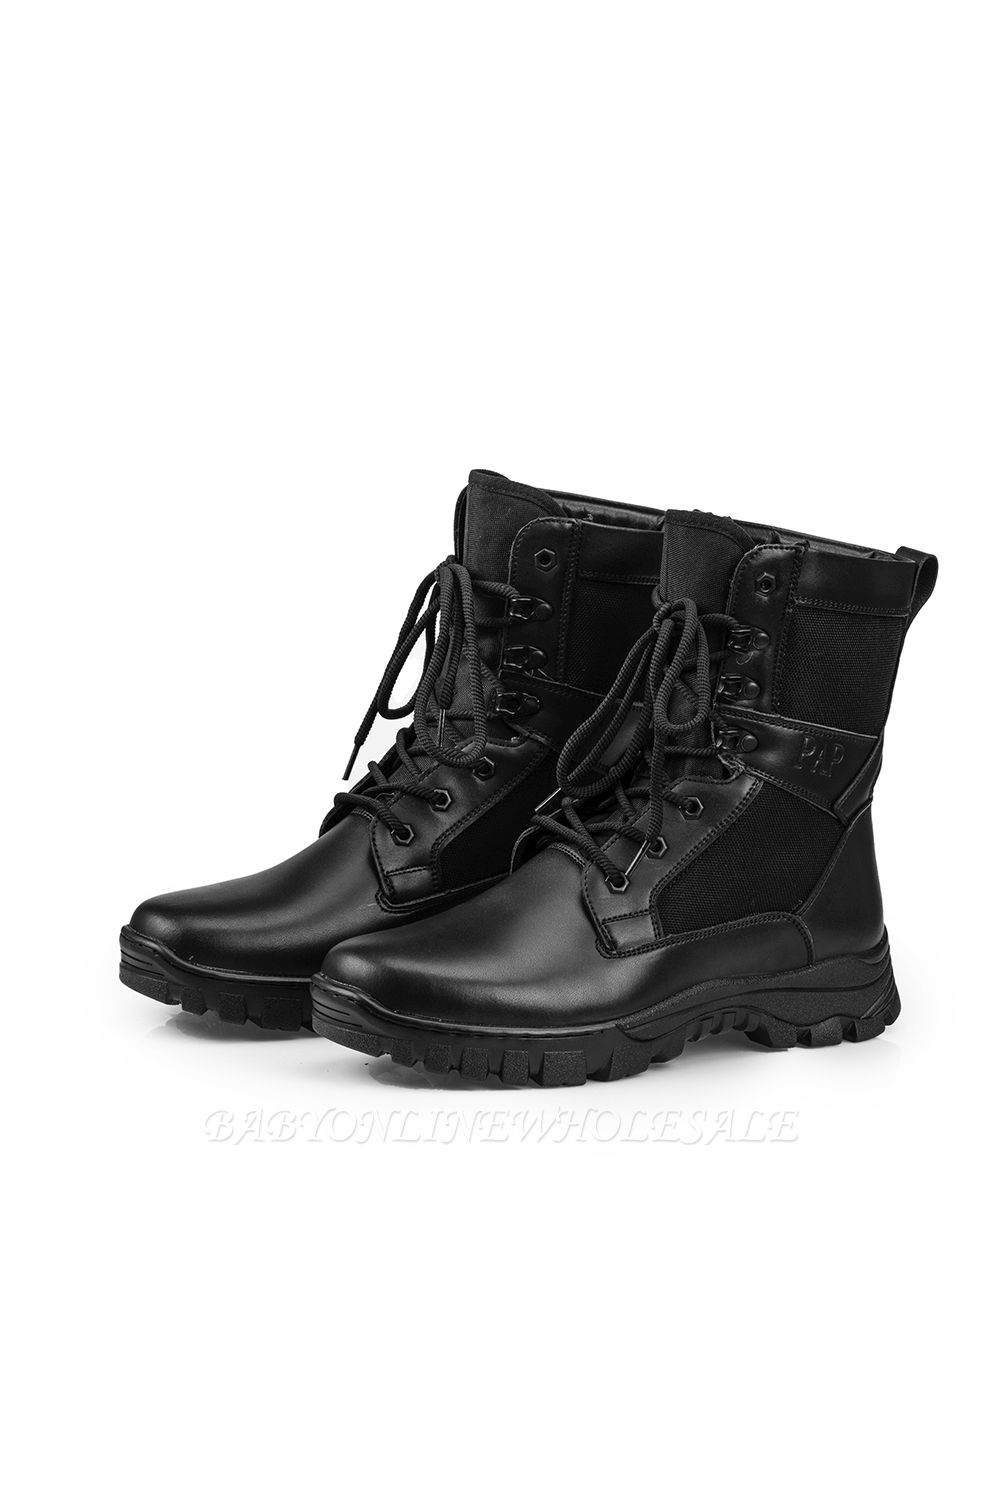 Men's Military Motorcycle Tactical Combat Boots Lace-up Boot